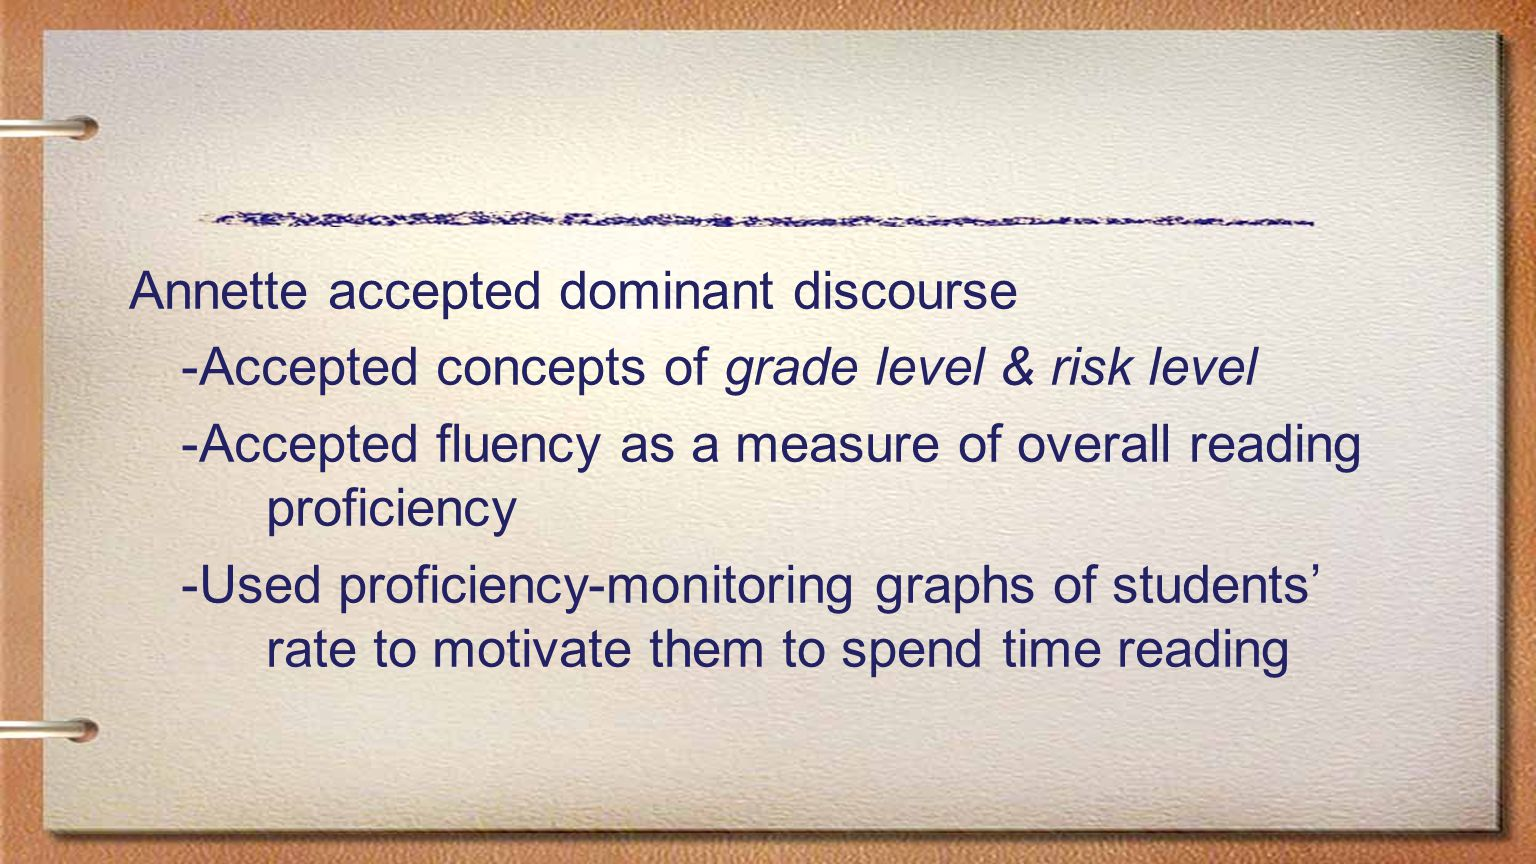 Annette accepted dominant discourse -Accepted concepts of grade level & risk level -Accepted fluency as a measure of overall reading proficiency -Used